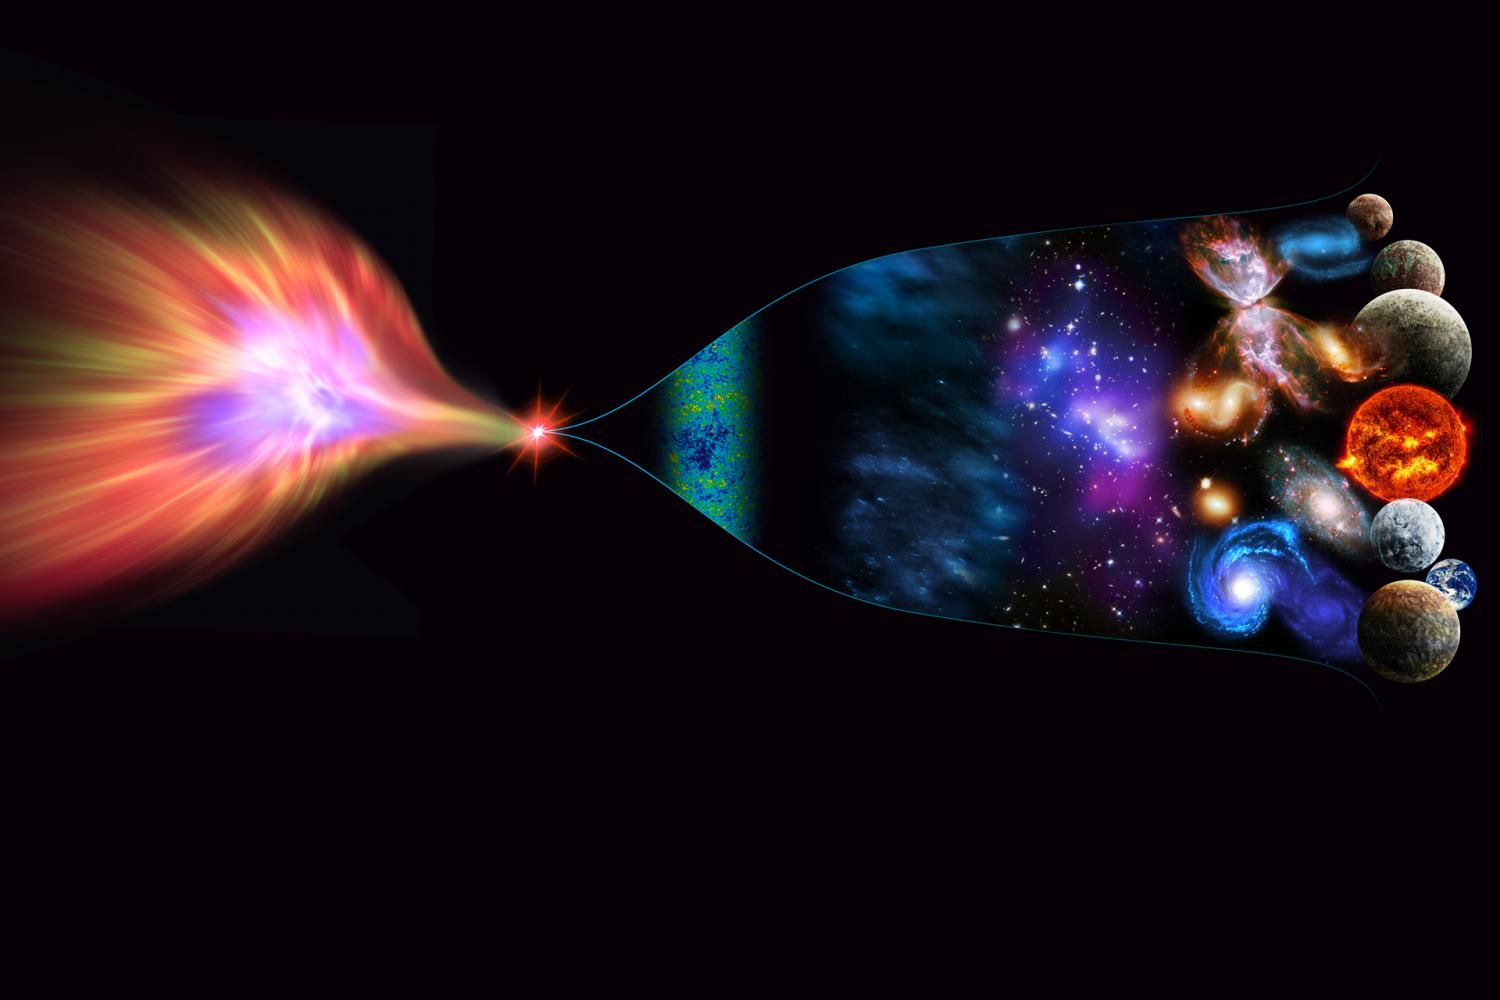 an examination of the black holes in the galaxy